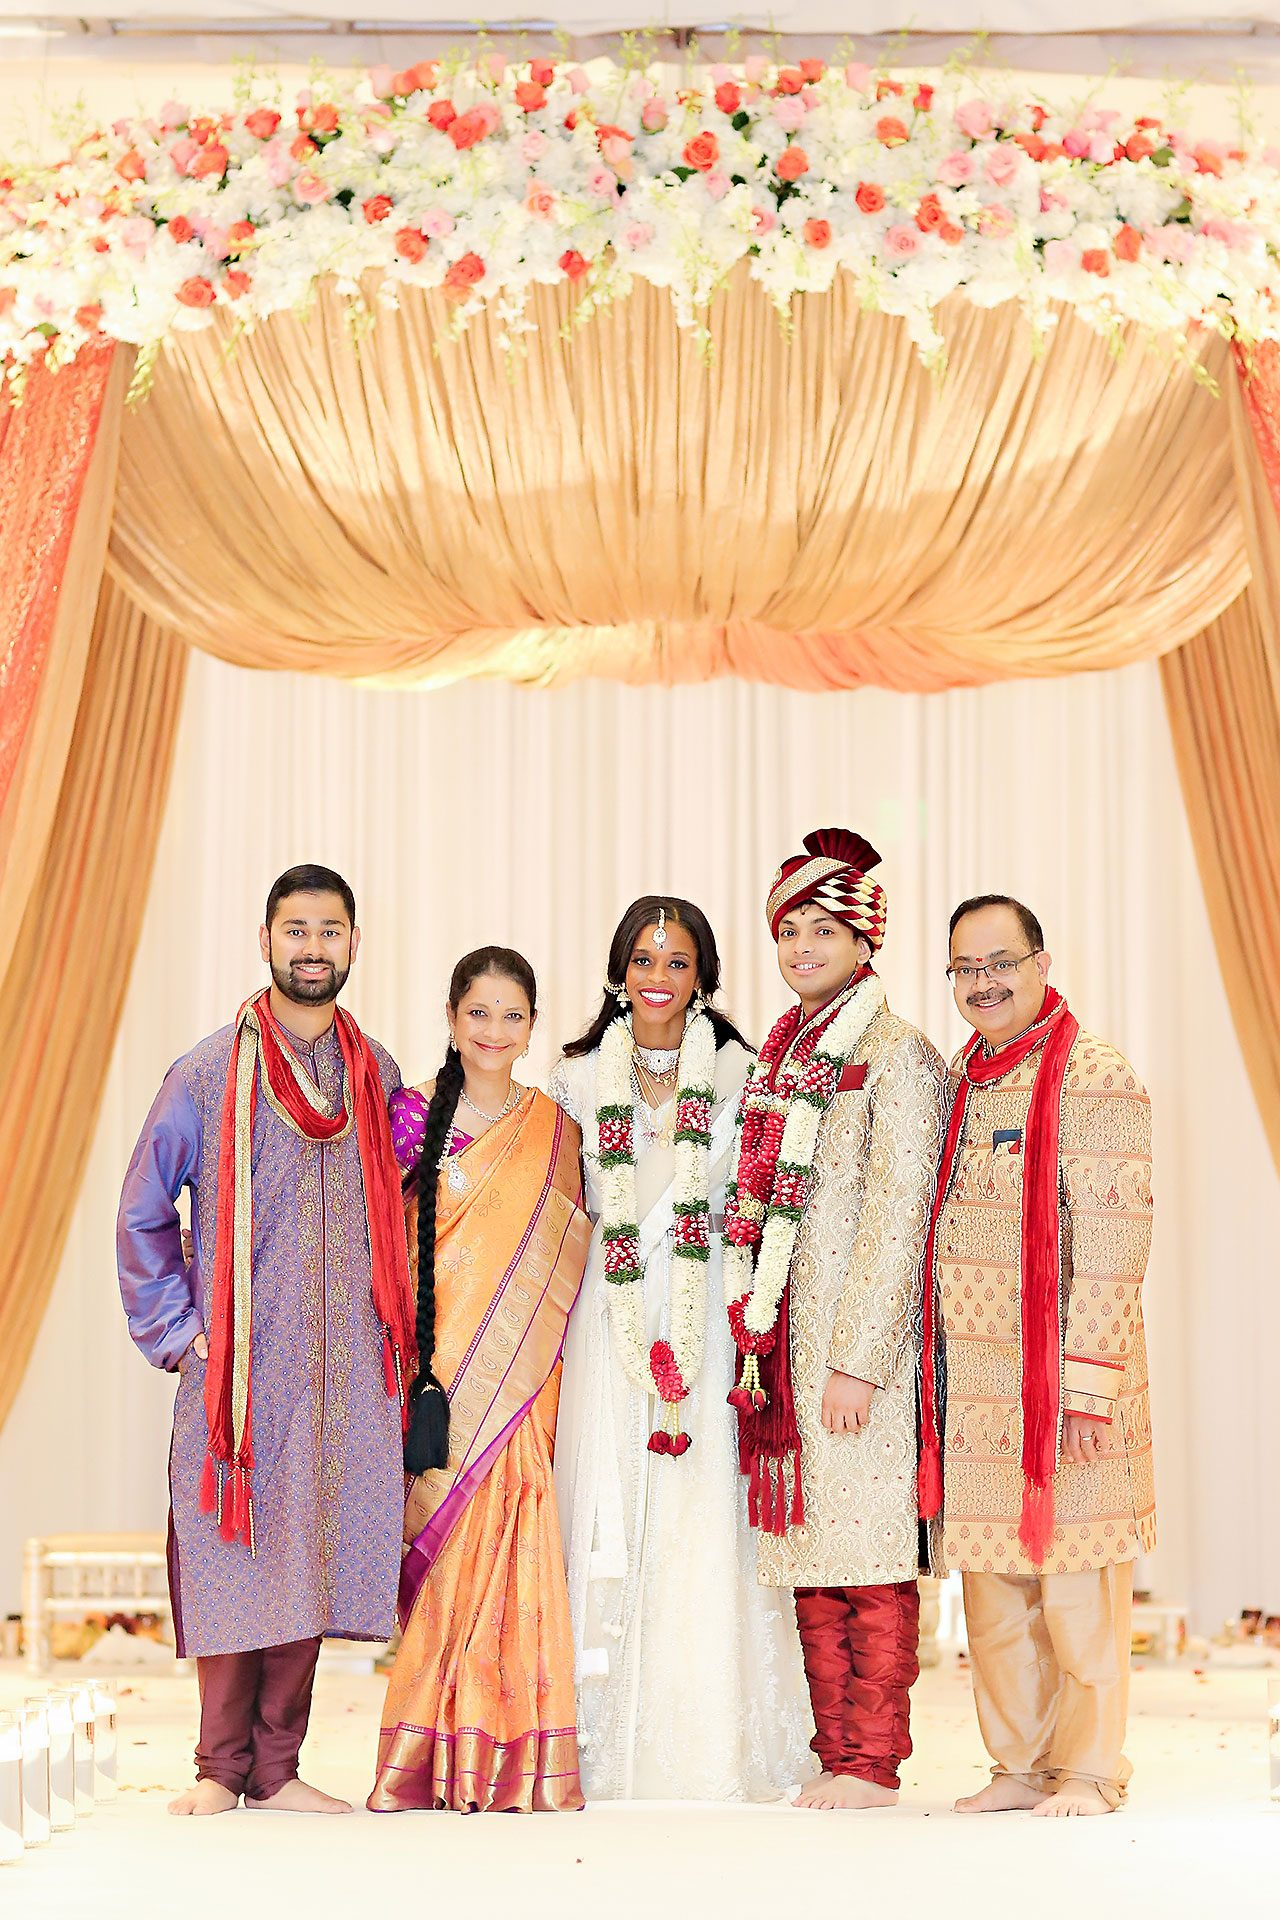 Joie Nikhil JW Marriott Indian Wedding 326